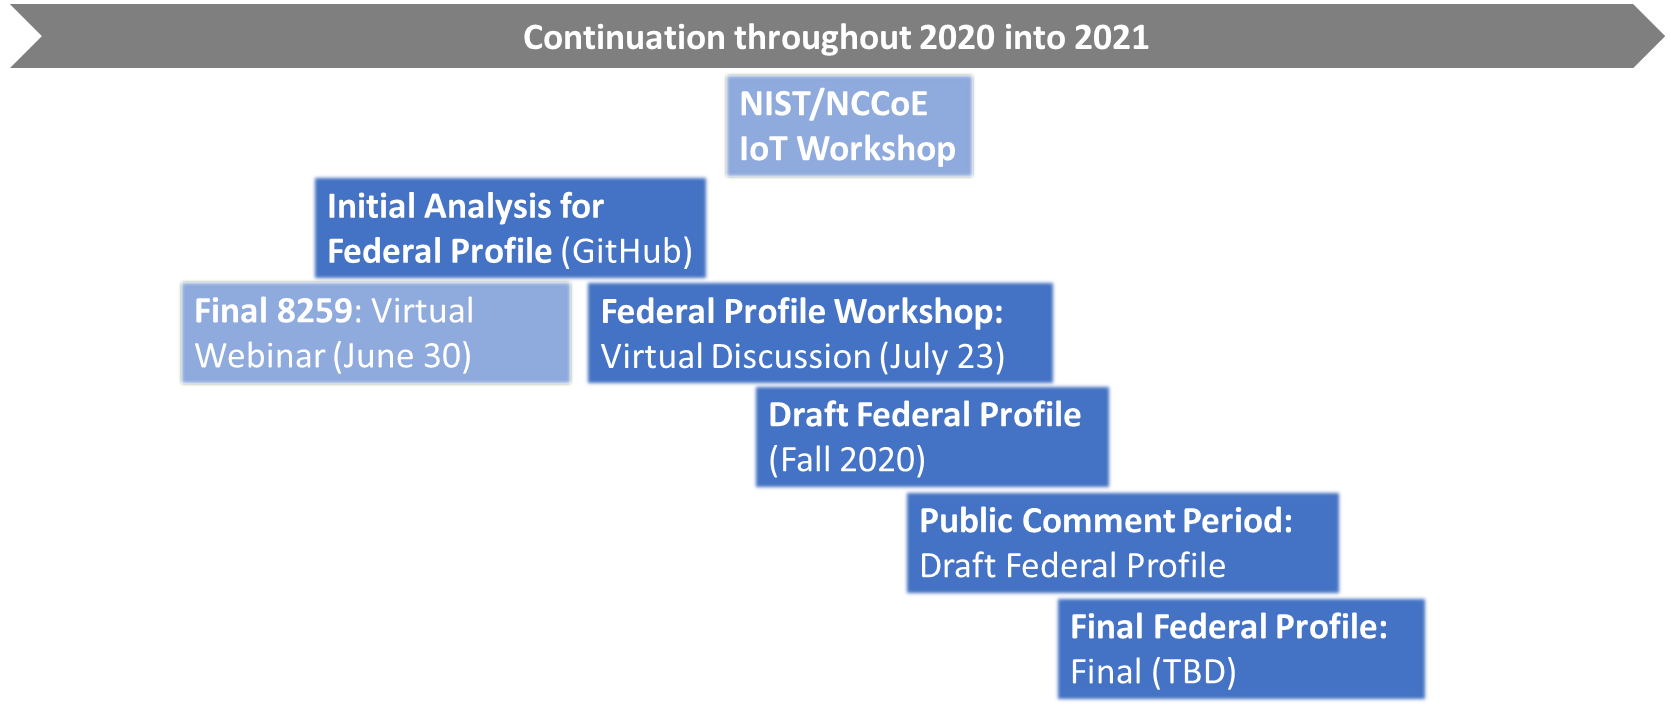 Graphic displaying upcoming IOT publications